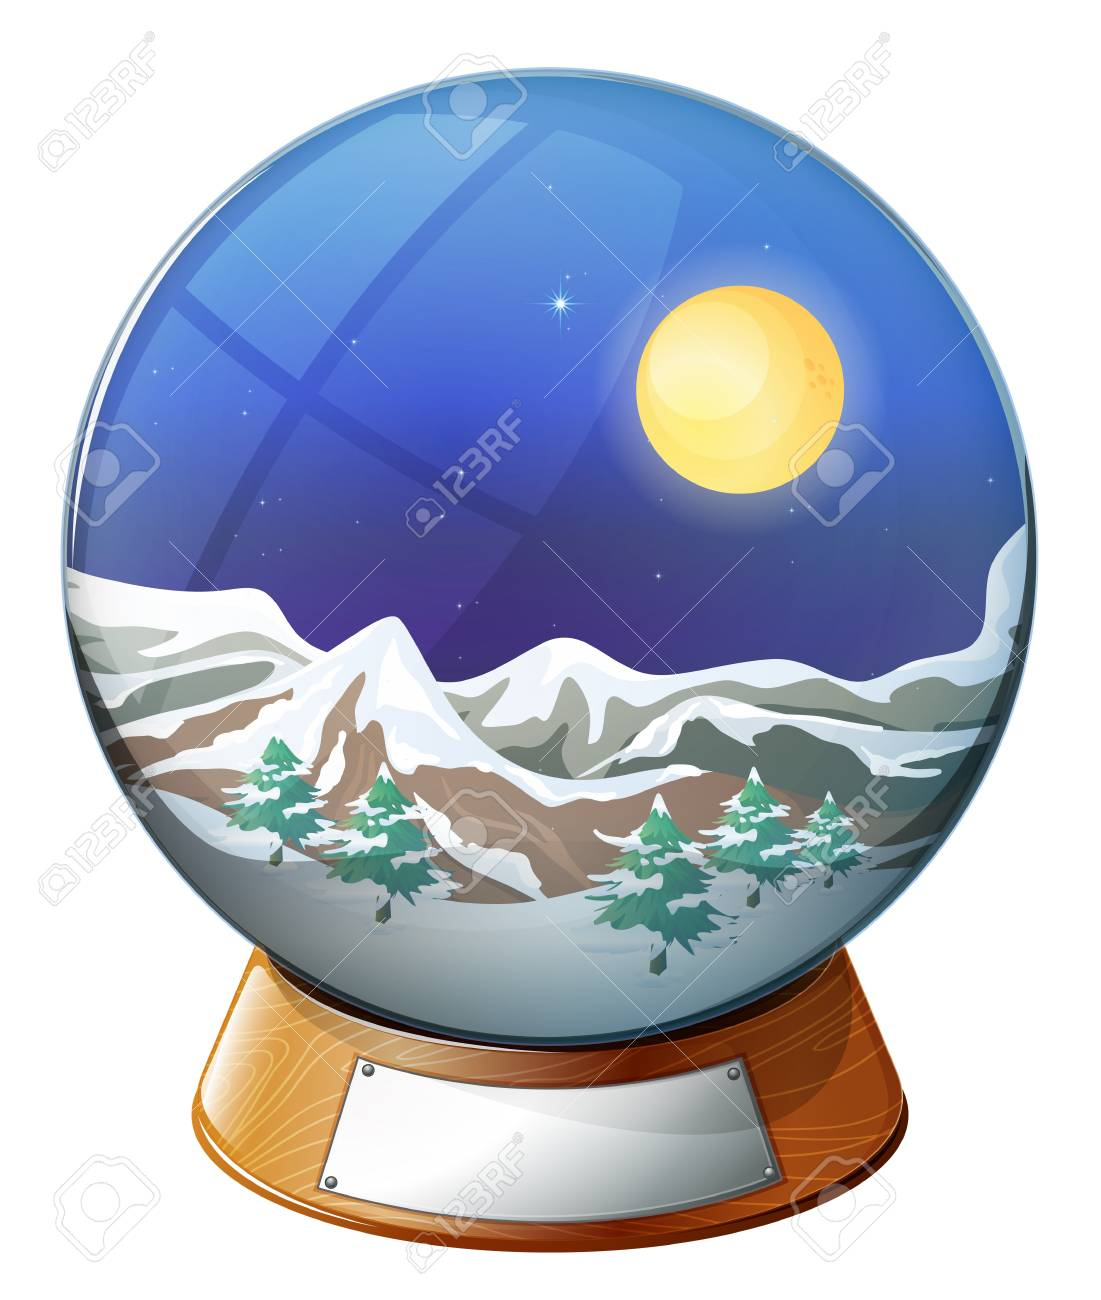 Illustration of a dome with an image of a snowy mountain on a white background Stock Vector - 19645418